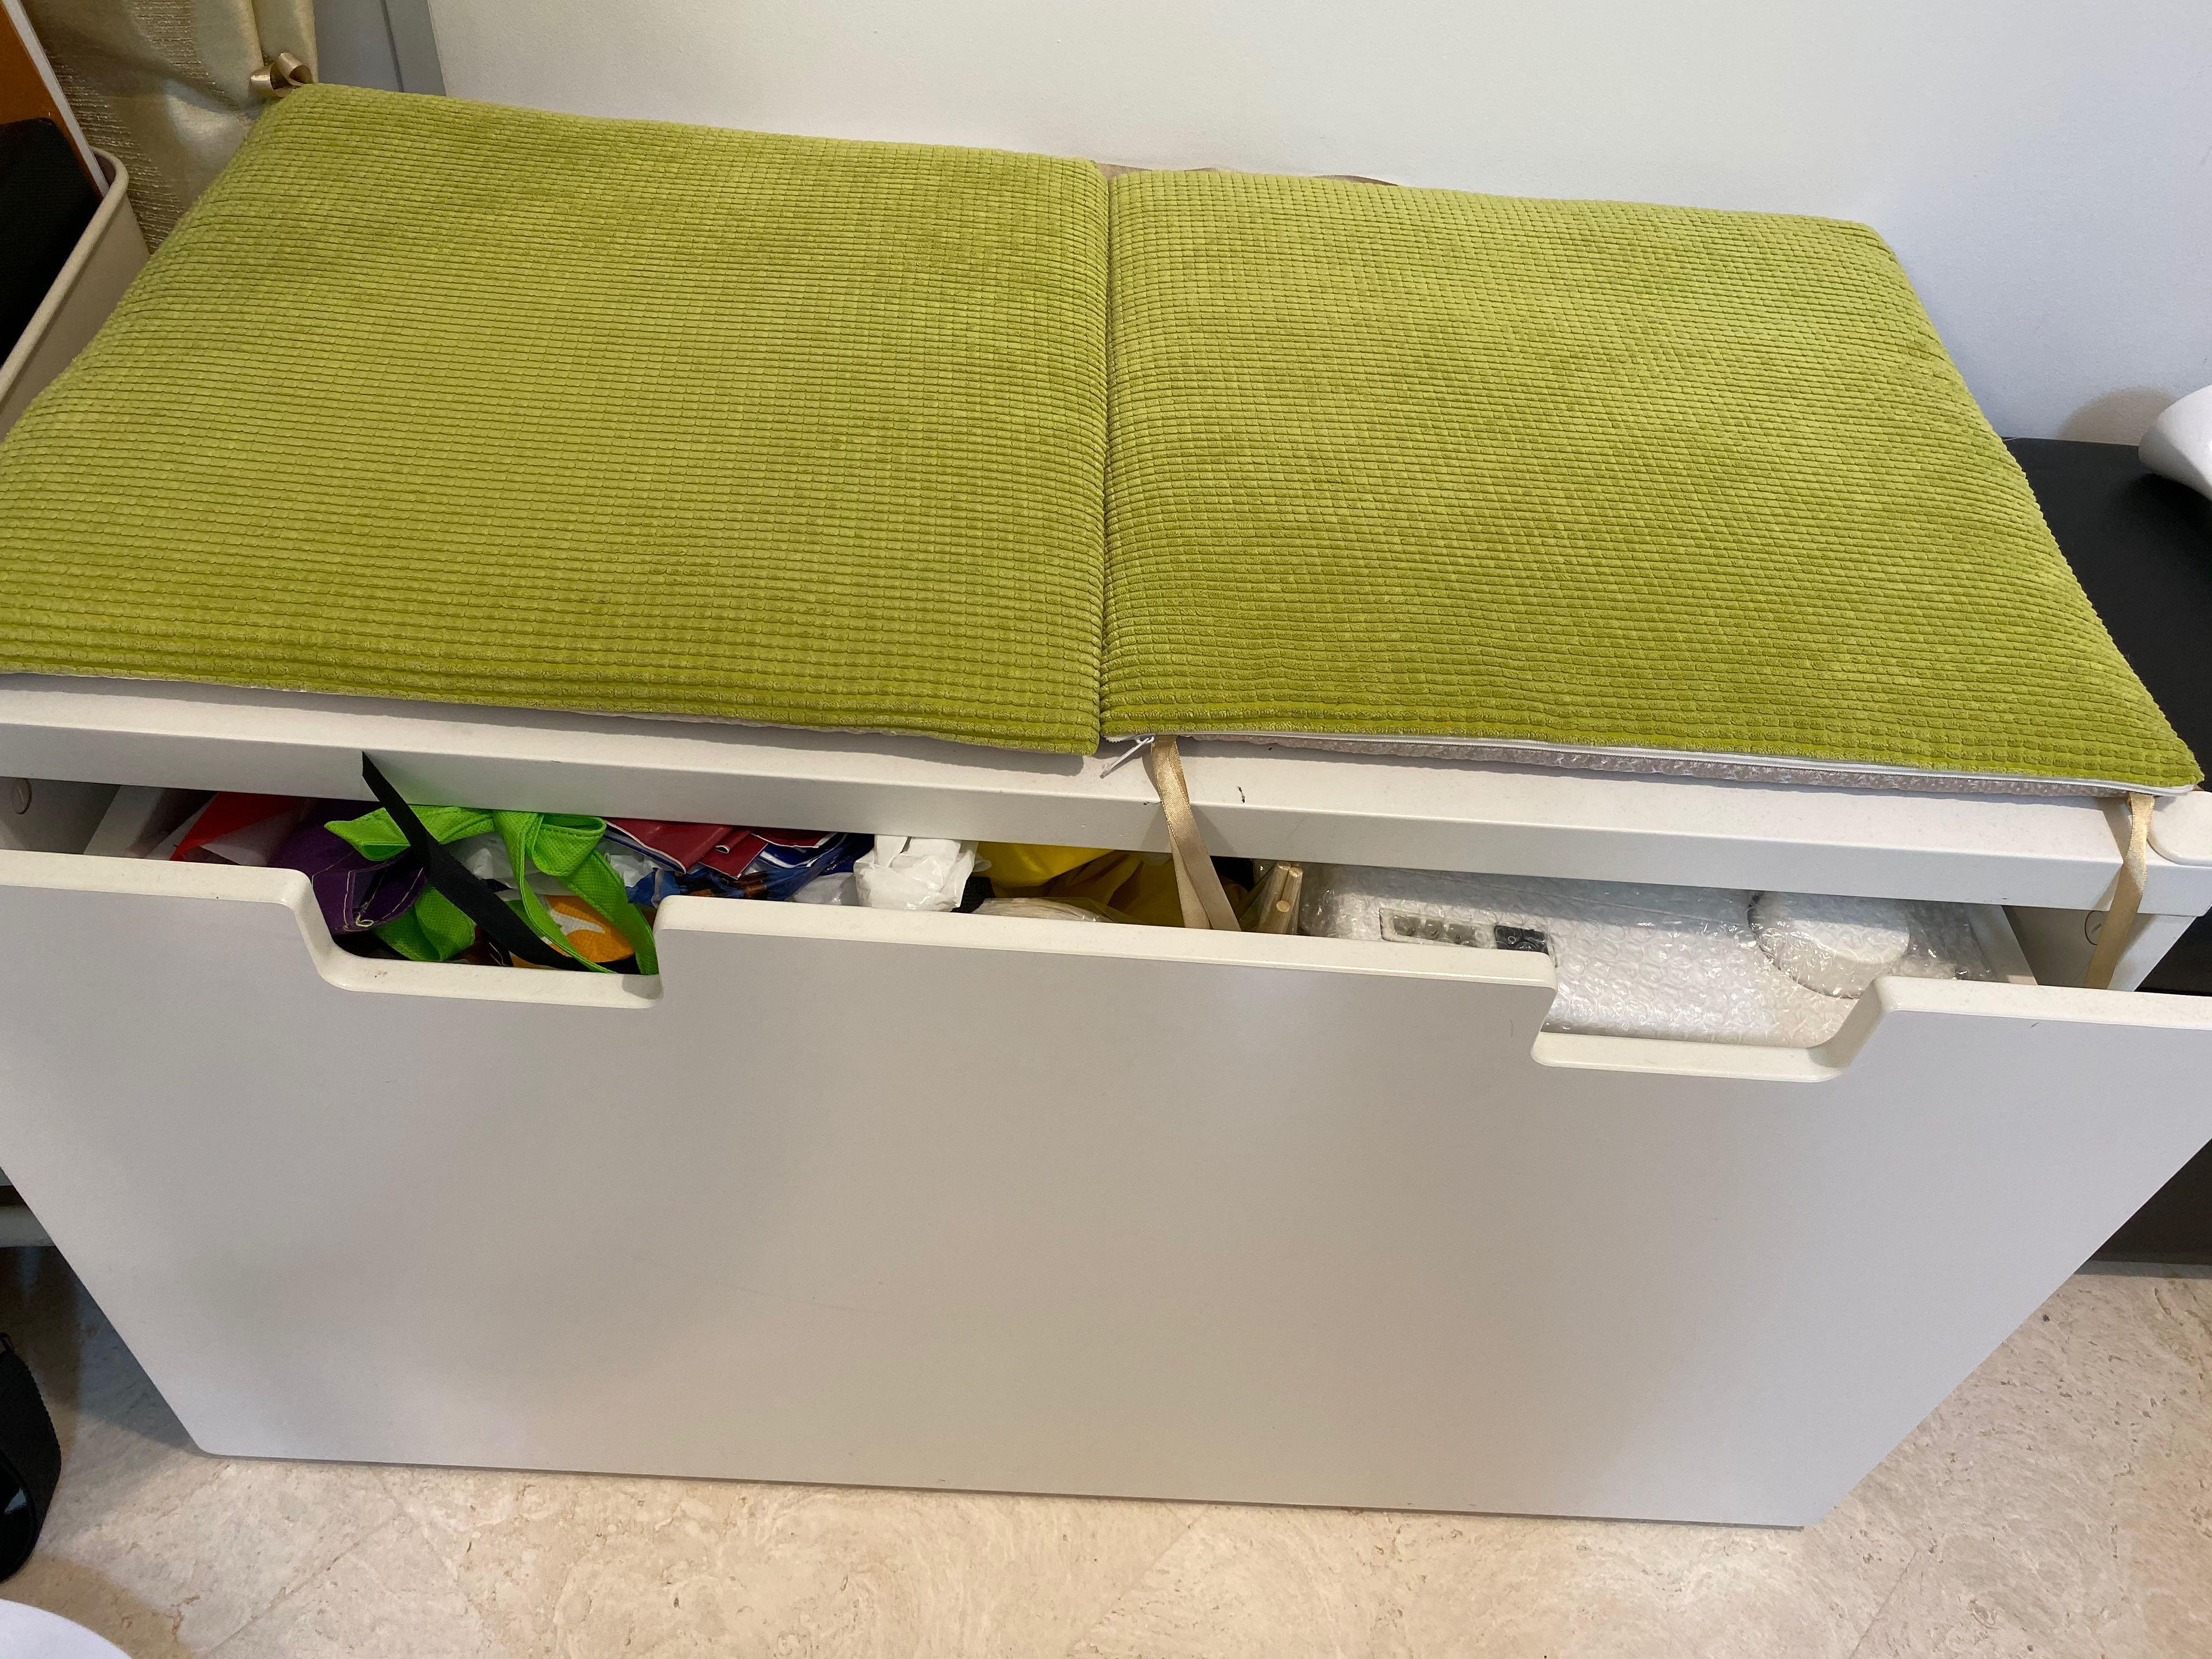 Ikea Toy Storage Bench Without Green Cushions Furniture Shelves Drawers On Carousell